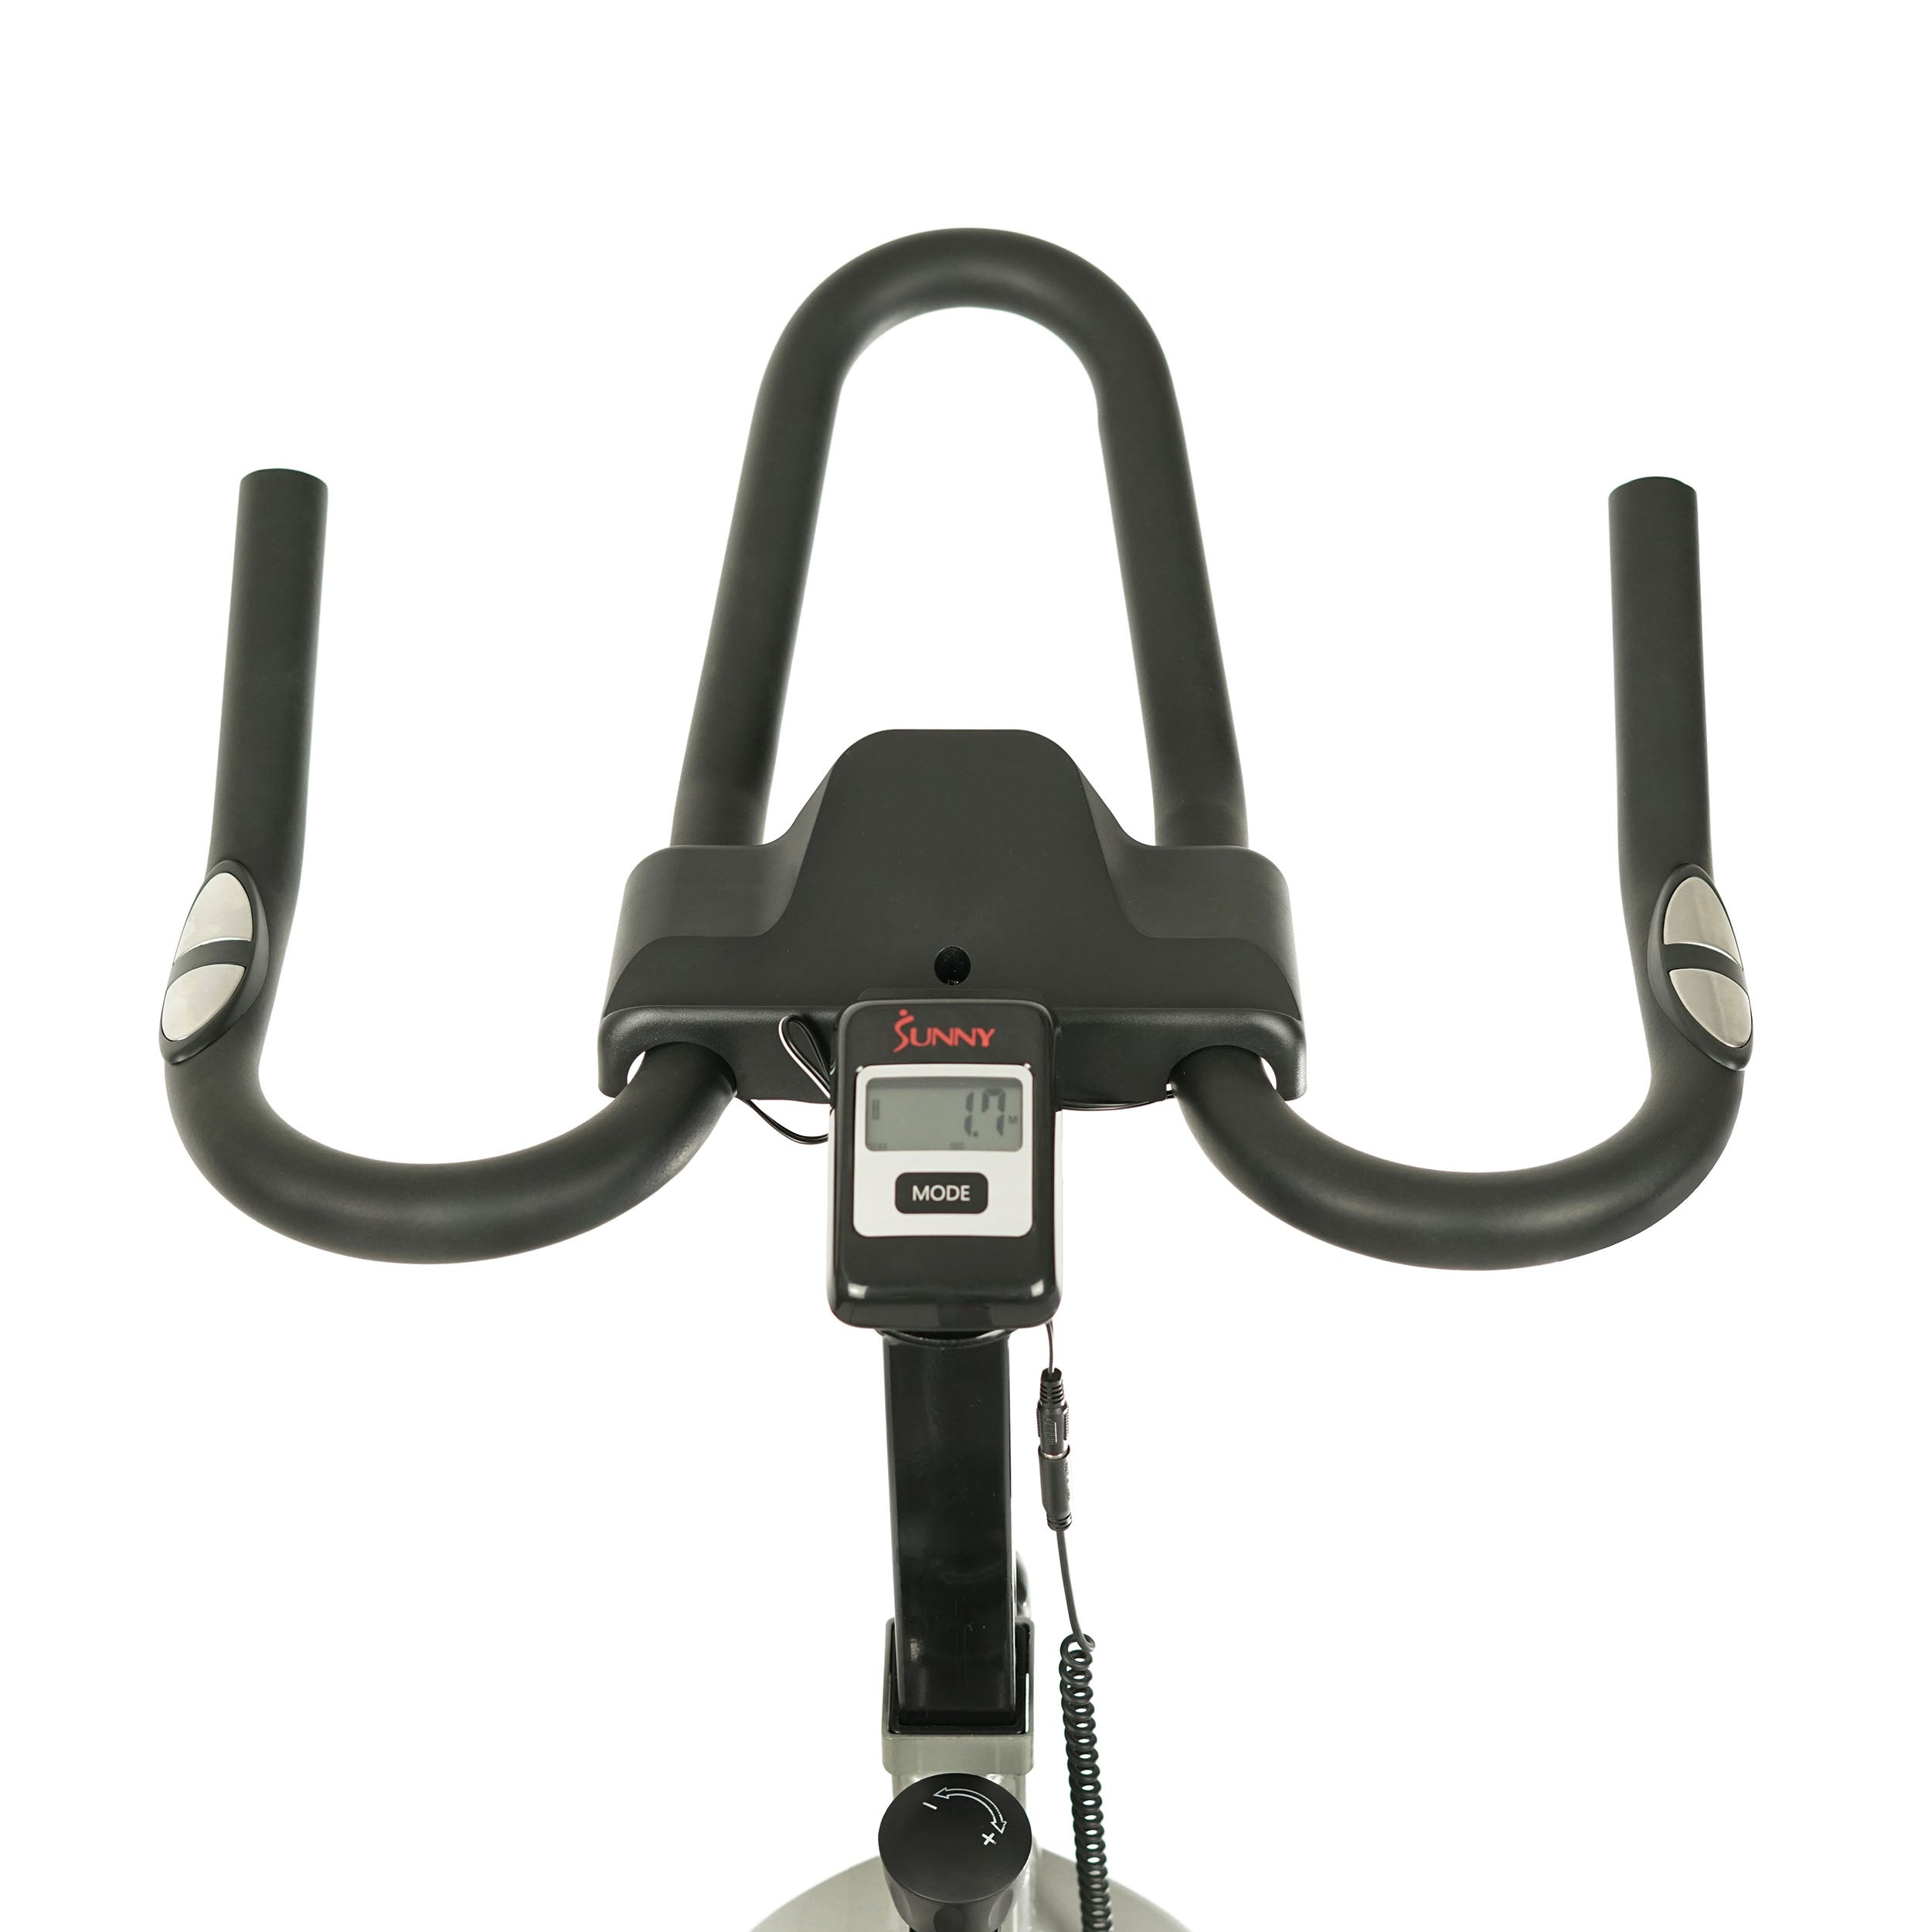 SF-B1995_fitness_Pro_II_Indoor_Cycling_Bike_With_Device_Mount_And_Advanced_Display_0012.jpg